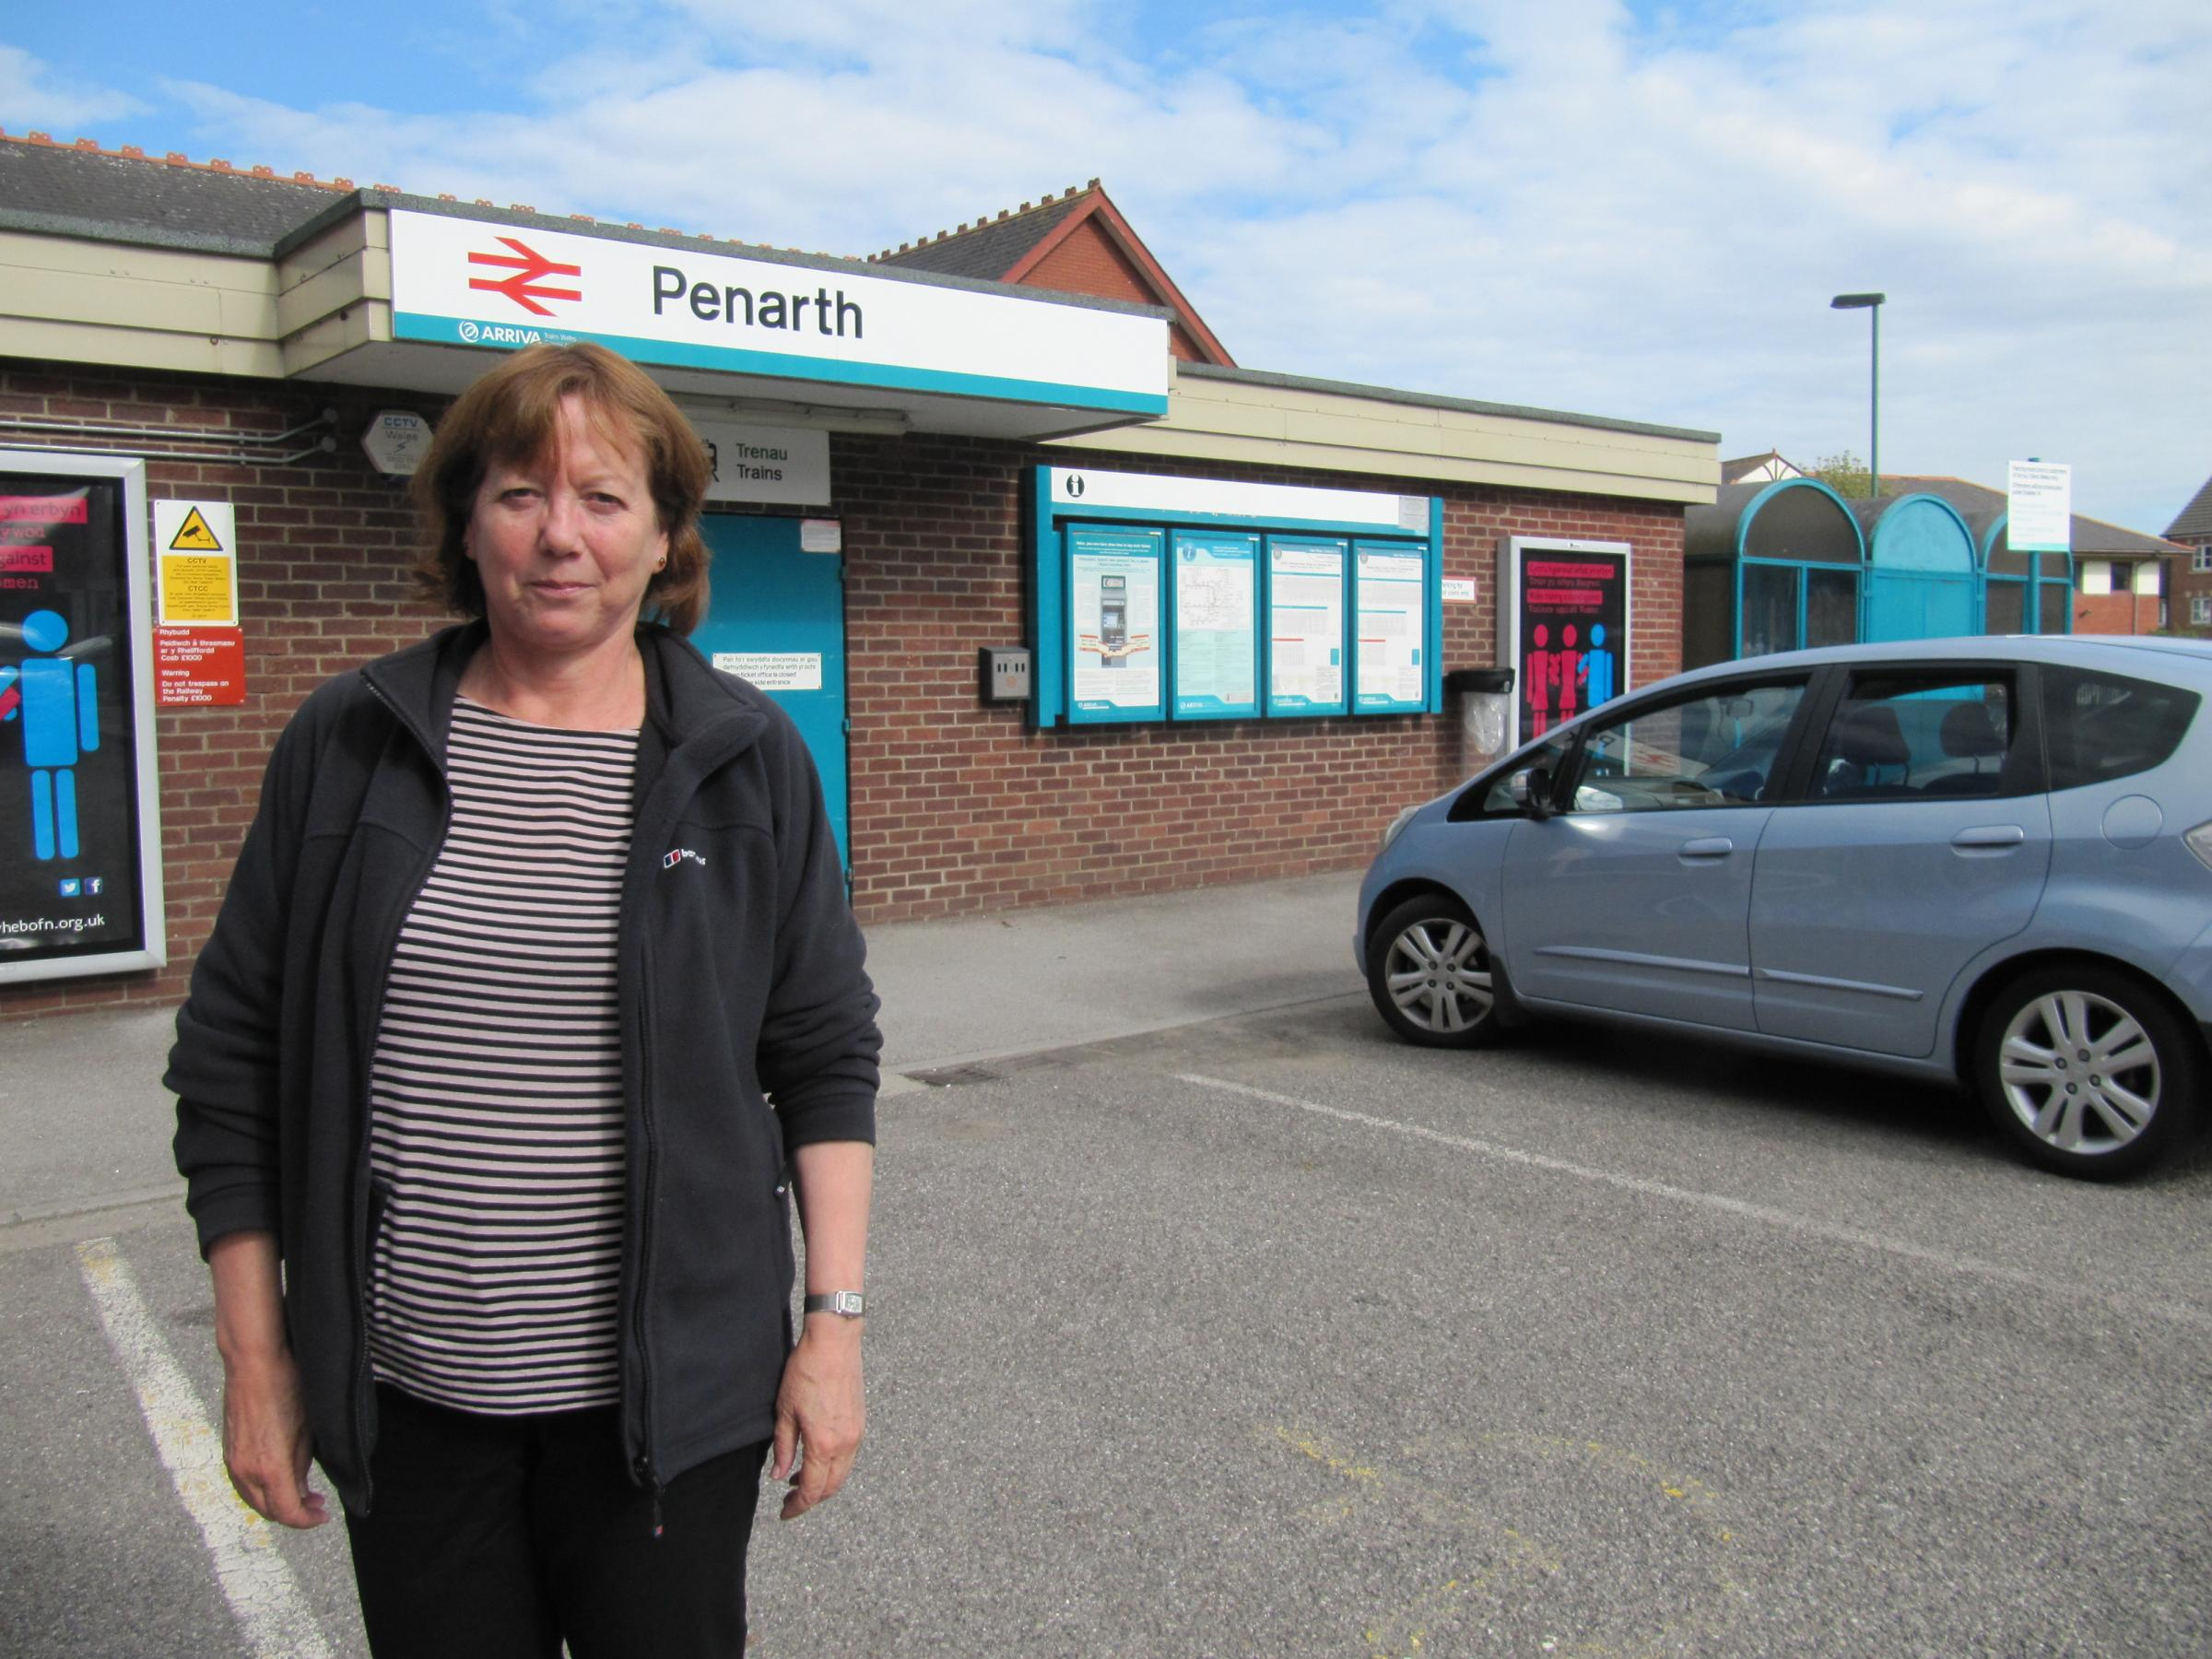 Could Penarth train station be on the move?